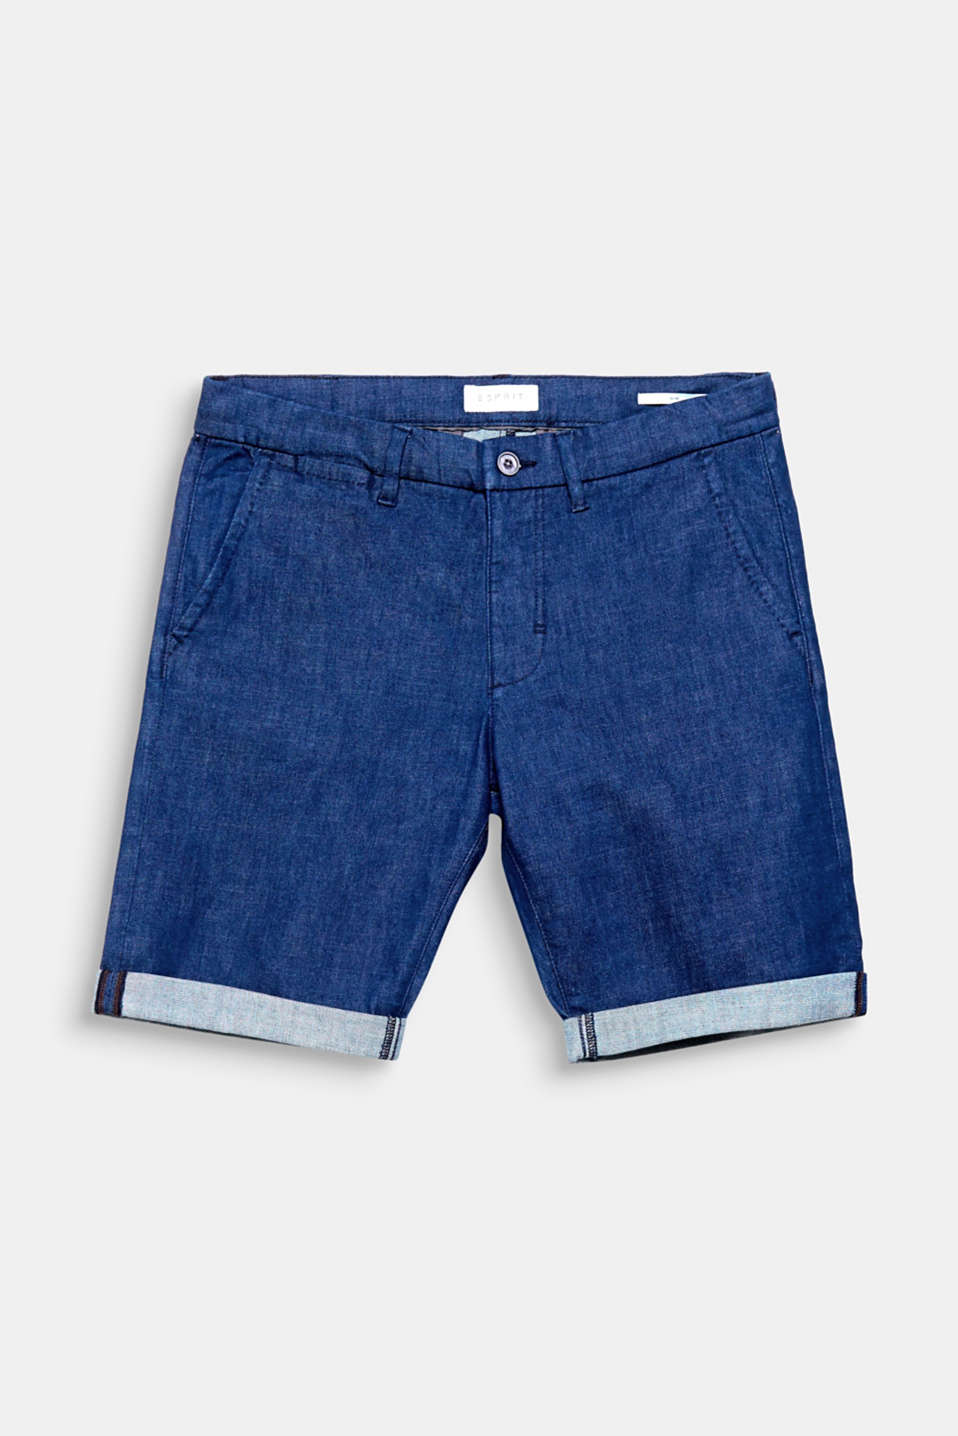 A timeless look: the sleek dye effect gives these denim shorts a universal look.